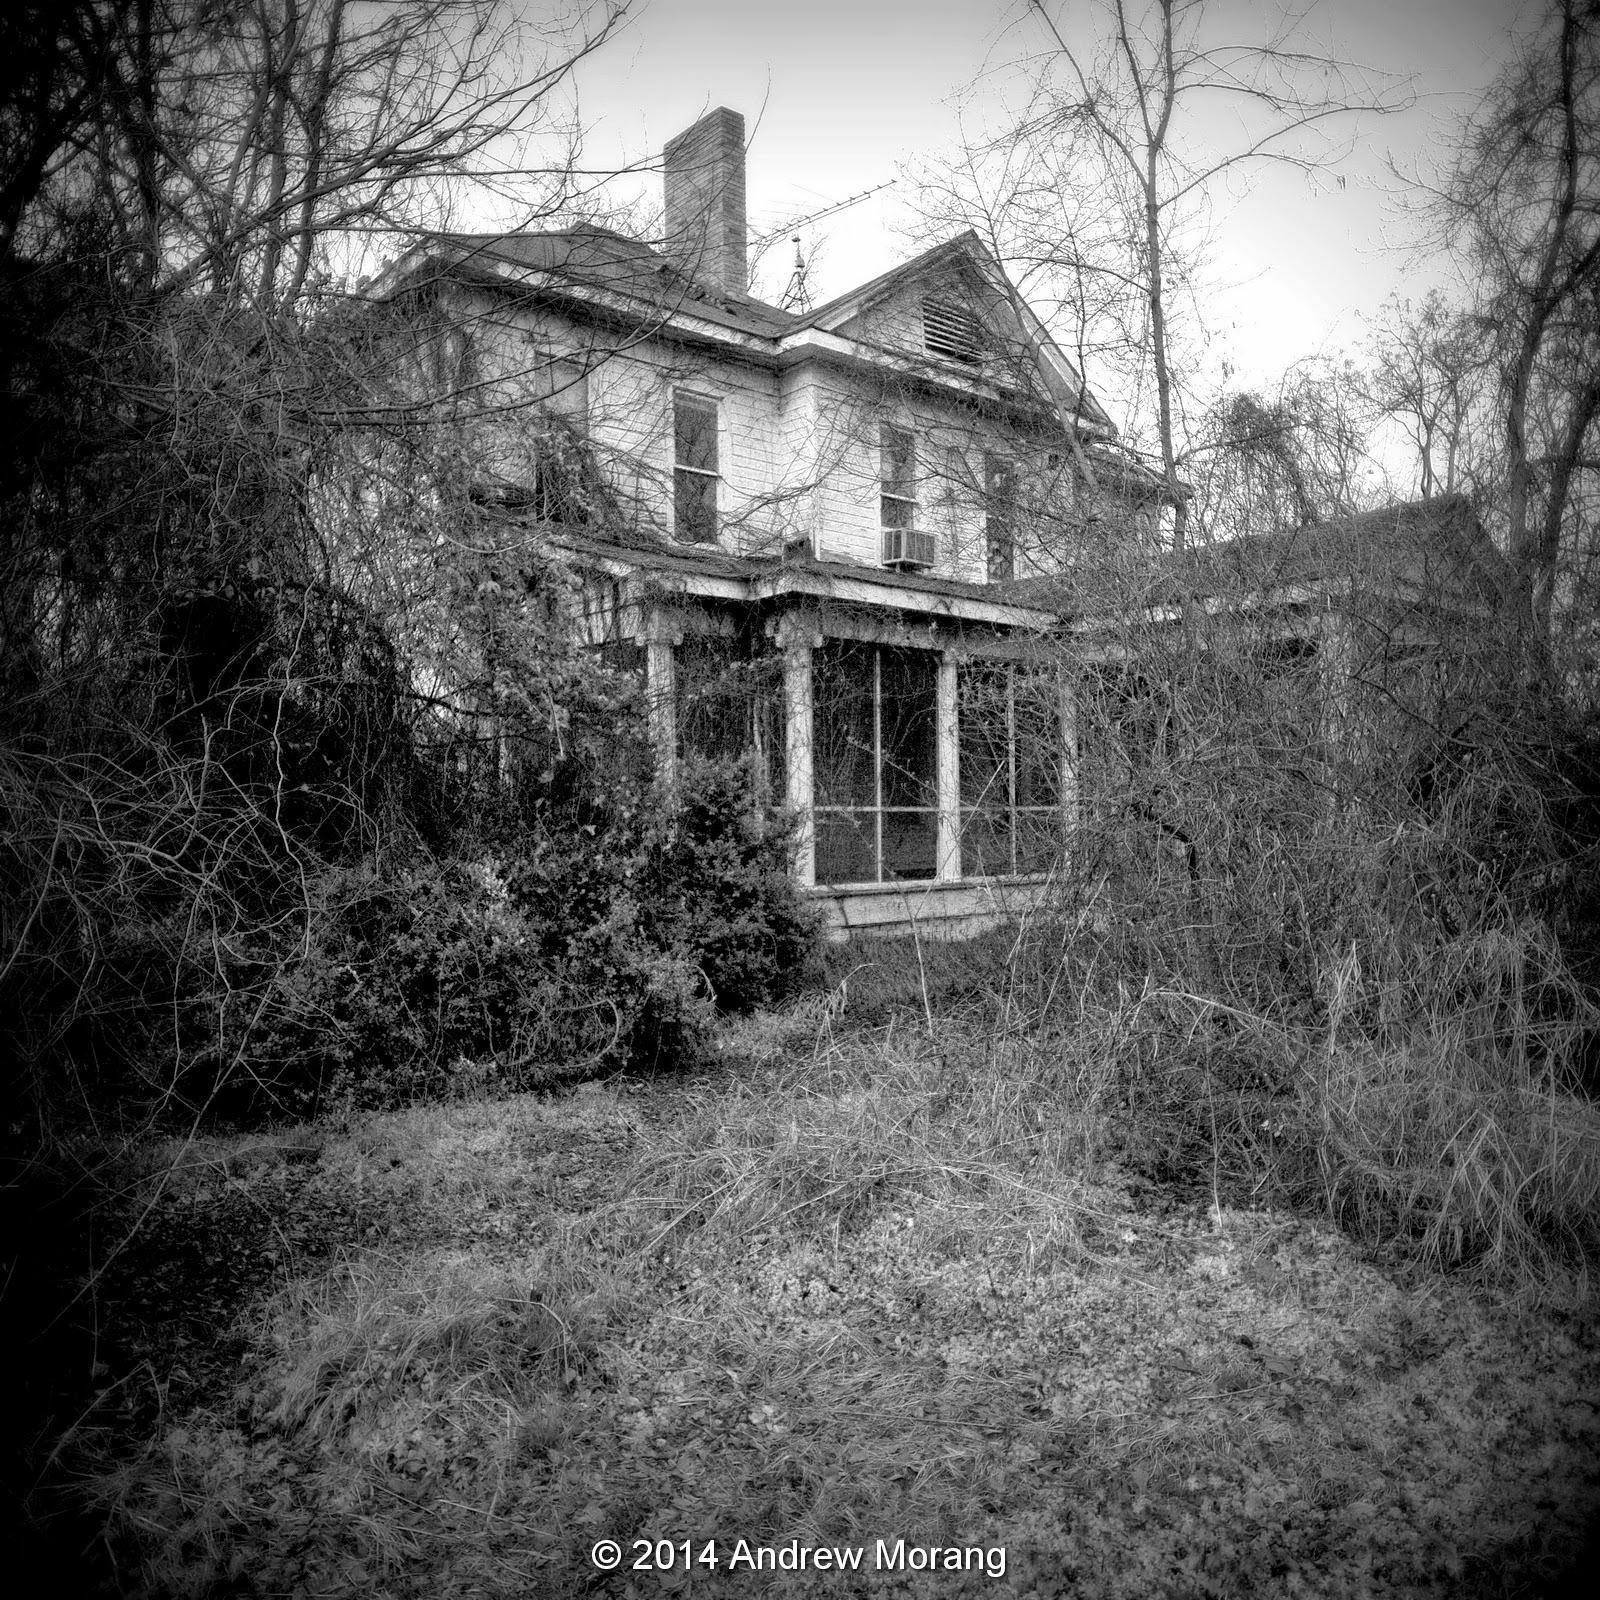 Mississippi washington county chatham - A Handsome White Wood House Faces Lake Washington In The Hamlet Of Foote Known As The Susie B Law House It Has Been Neglected For 5 Or 10 Years And Is